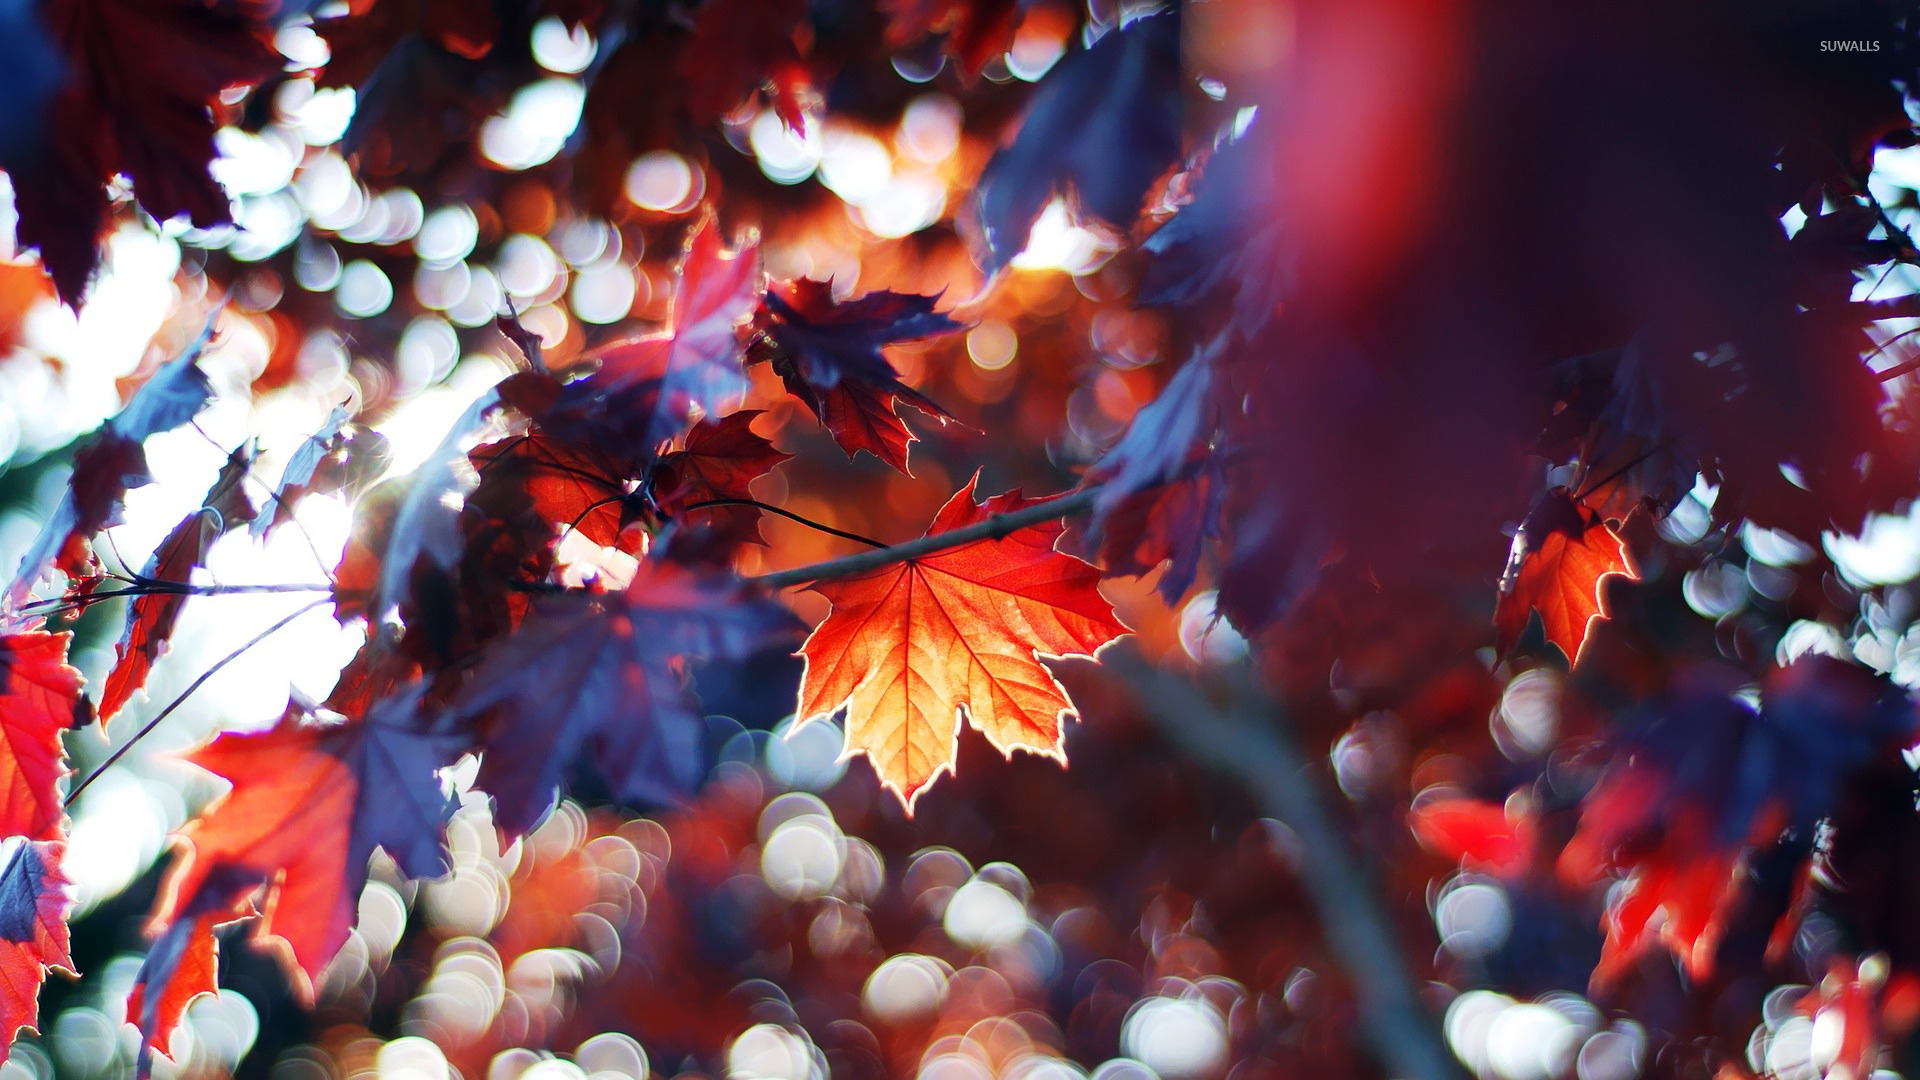 Autumn Leaves 9 Wallpaper Photography Wallpapers 15141